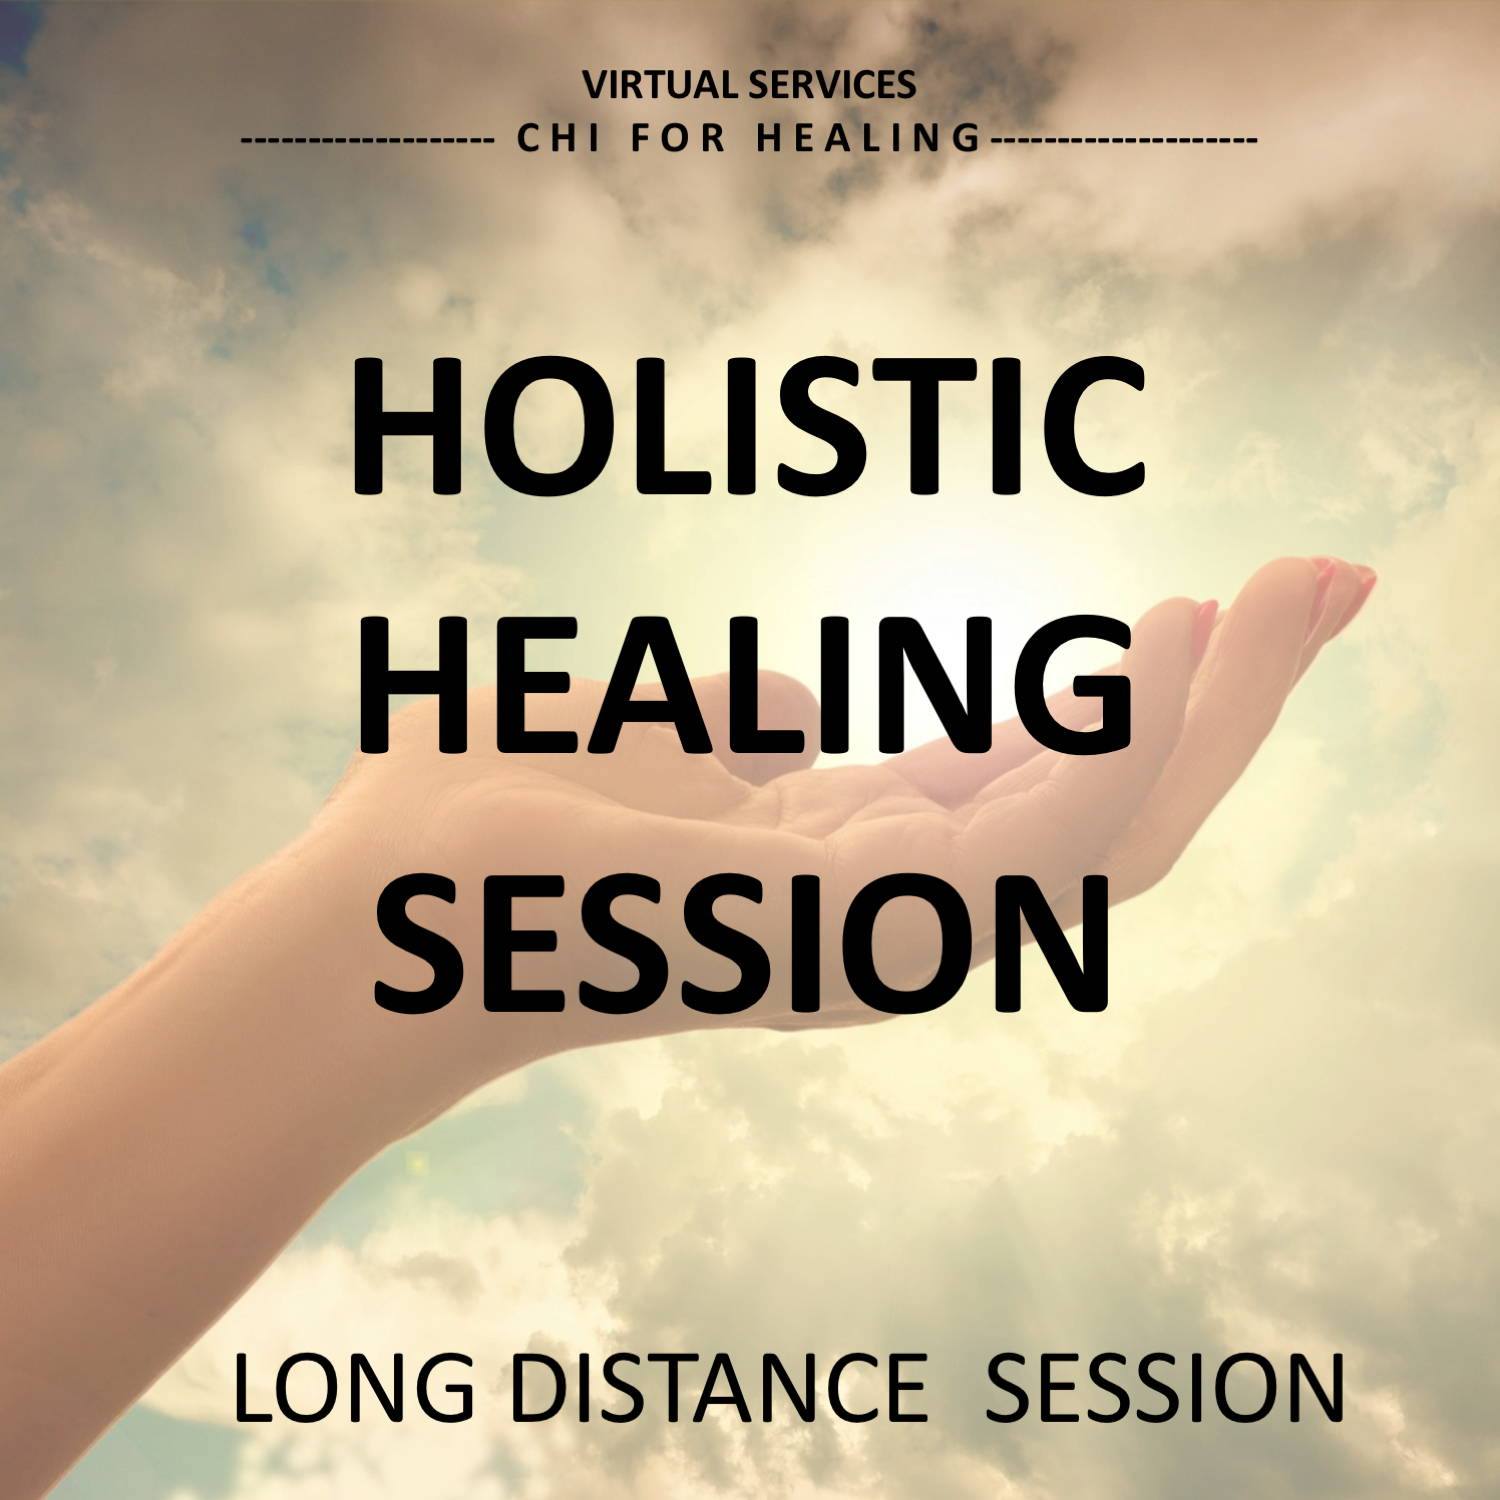 holistic healing session